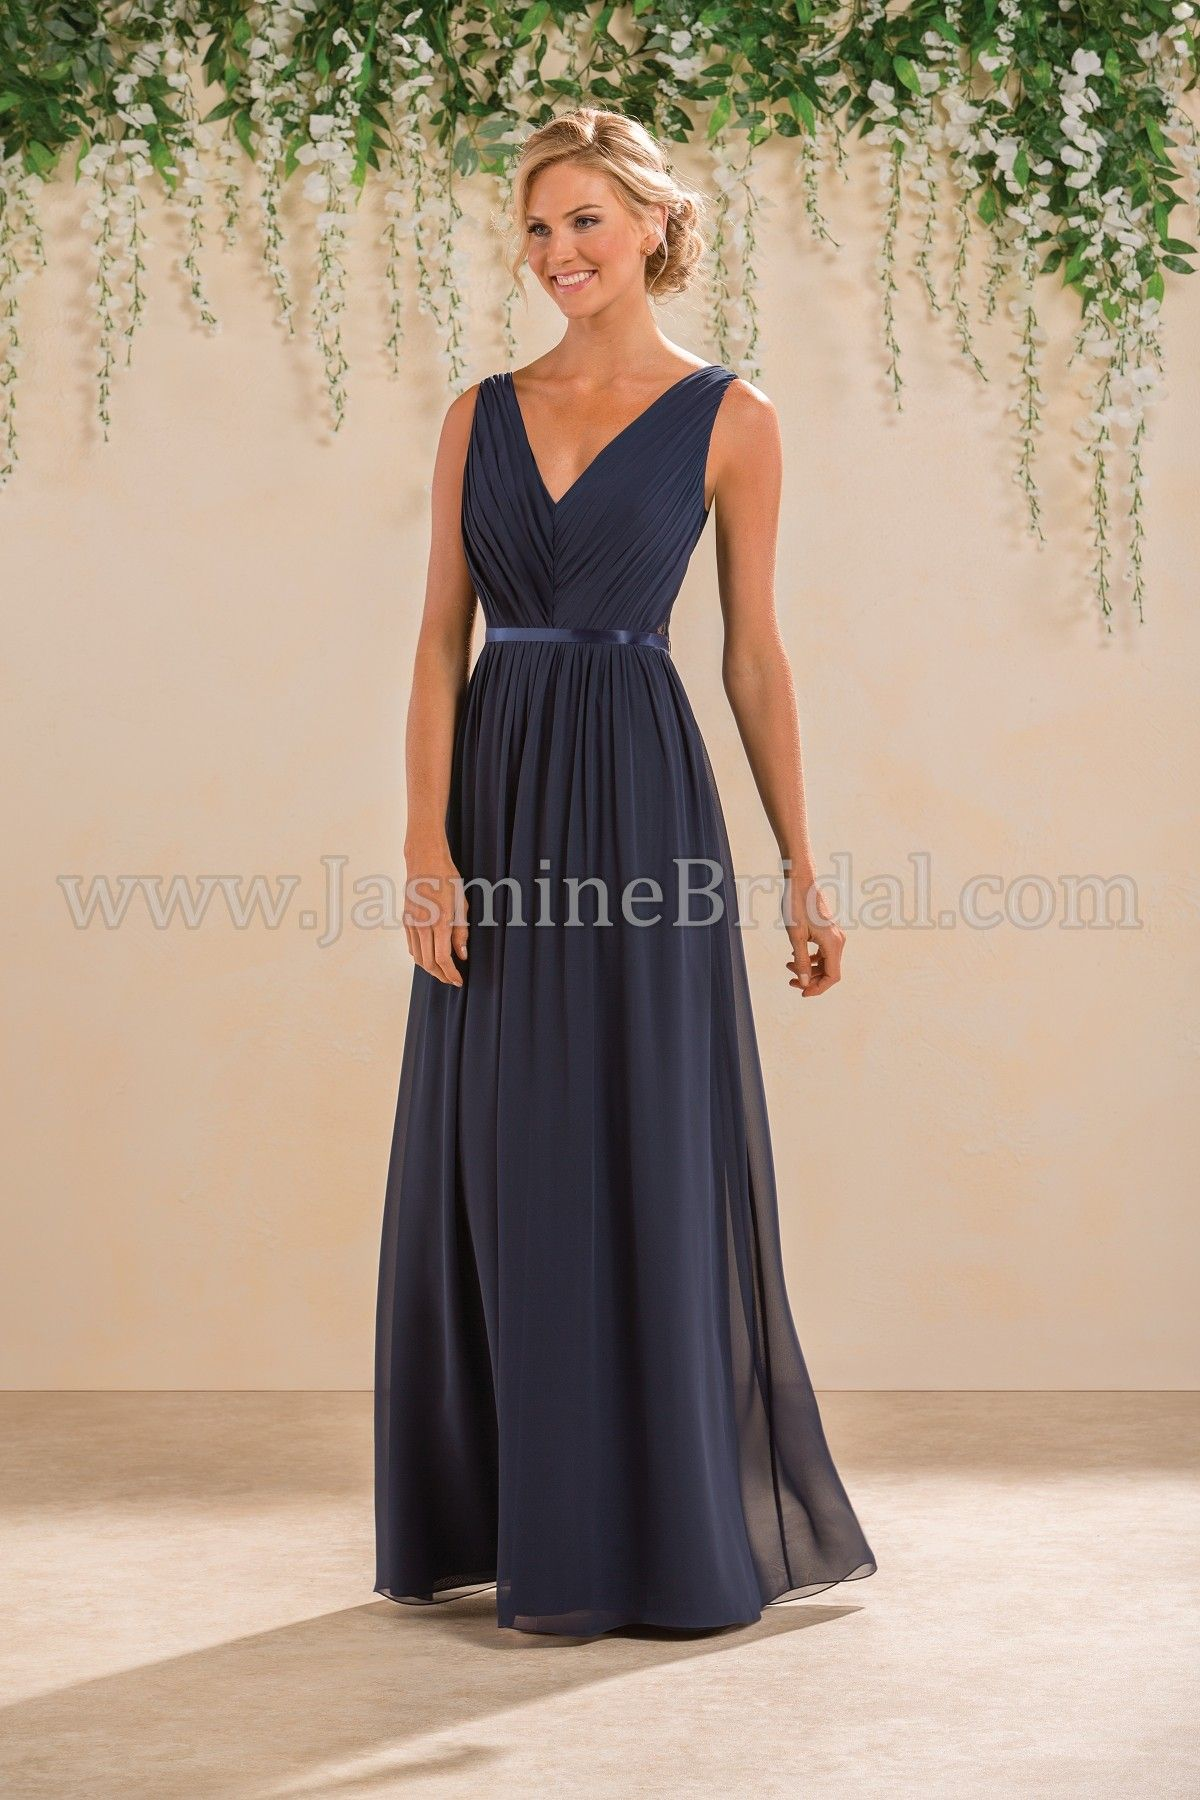 Jasmine bridal bridesmaid dress b2 style b183009 in tahiti blue jasmine bridal bridesmaid dress b2 style b183014 in cayman blue navy ombrellifo Image collections